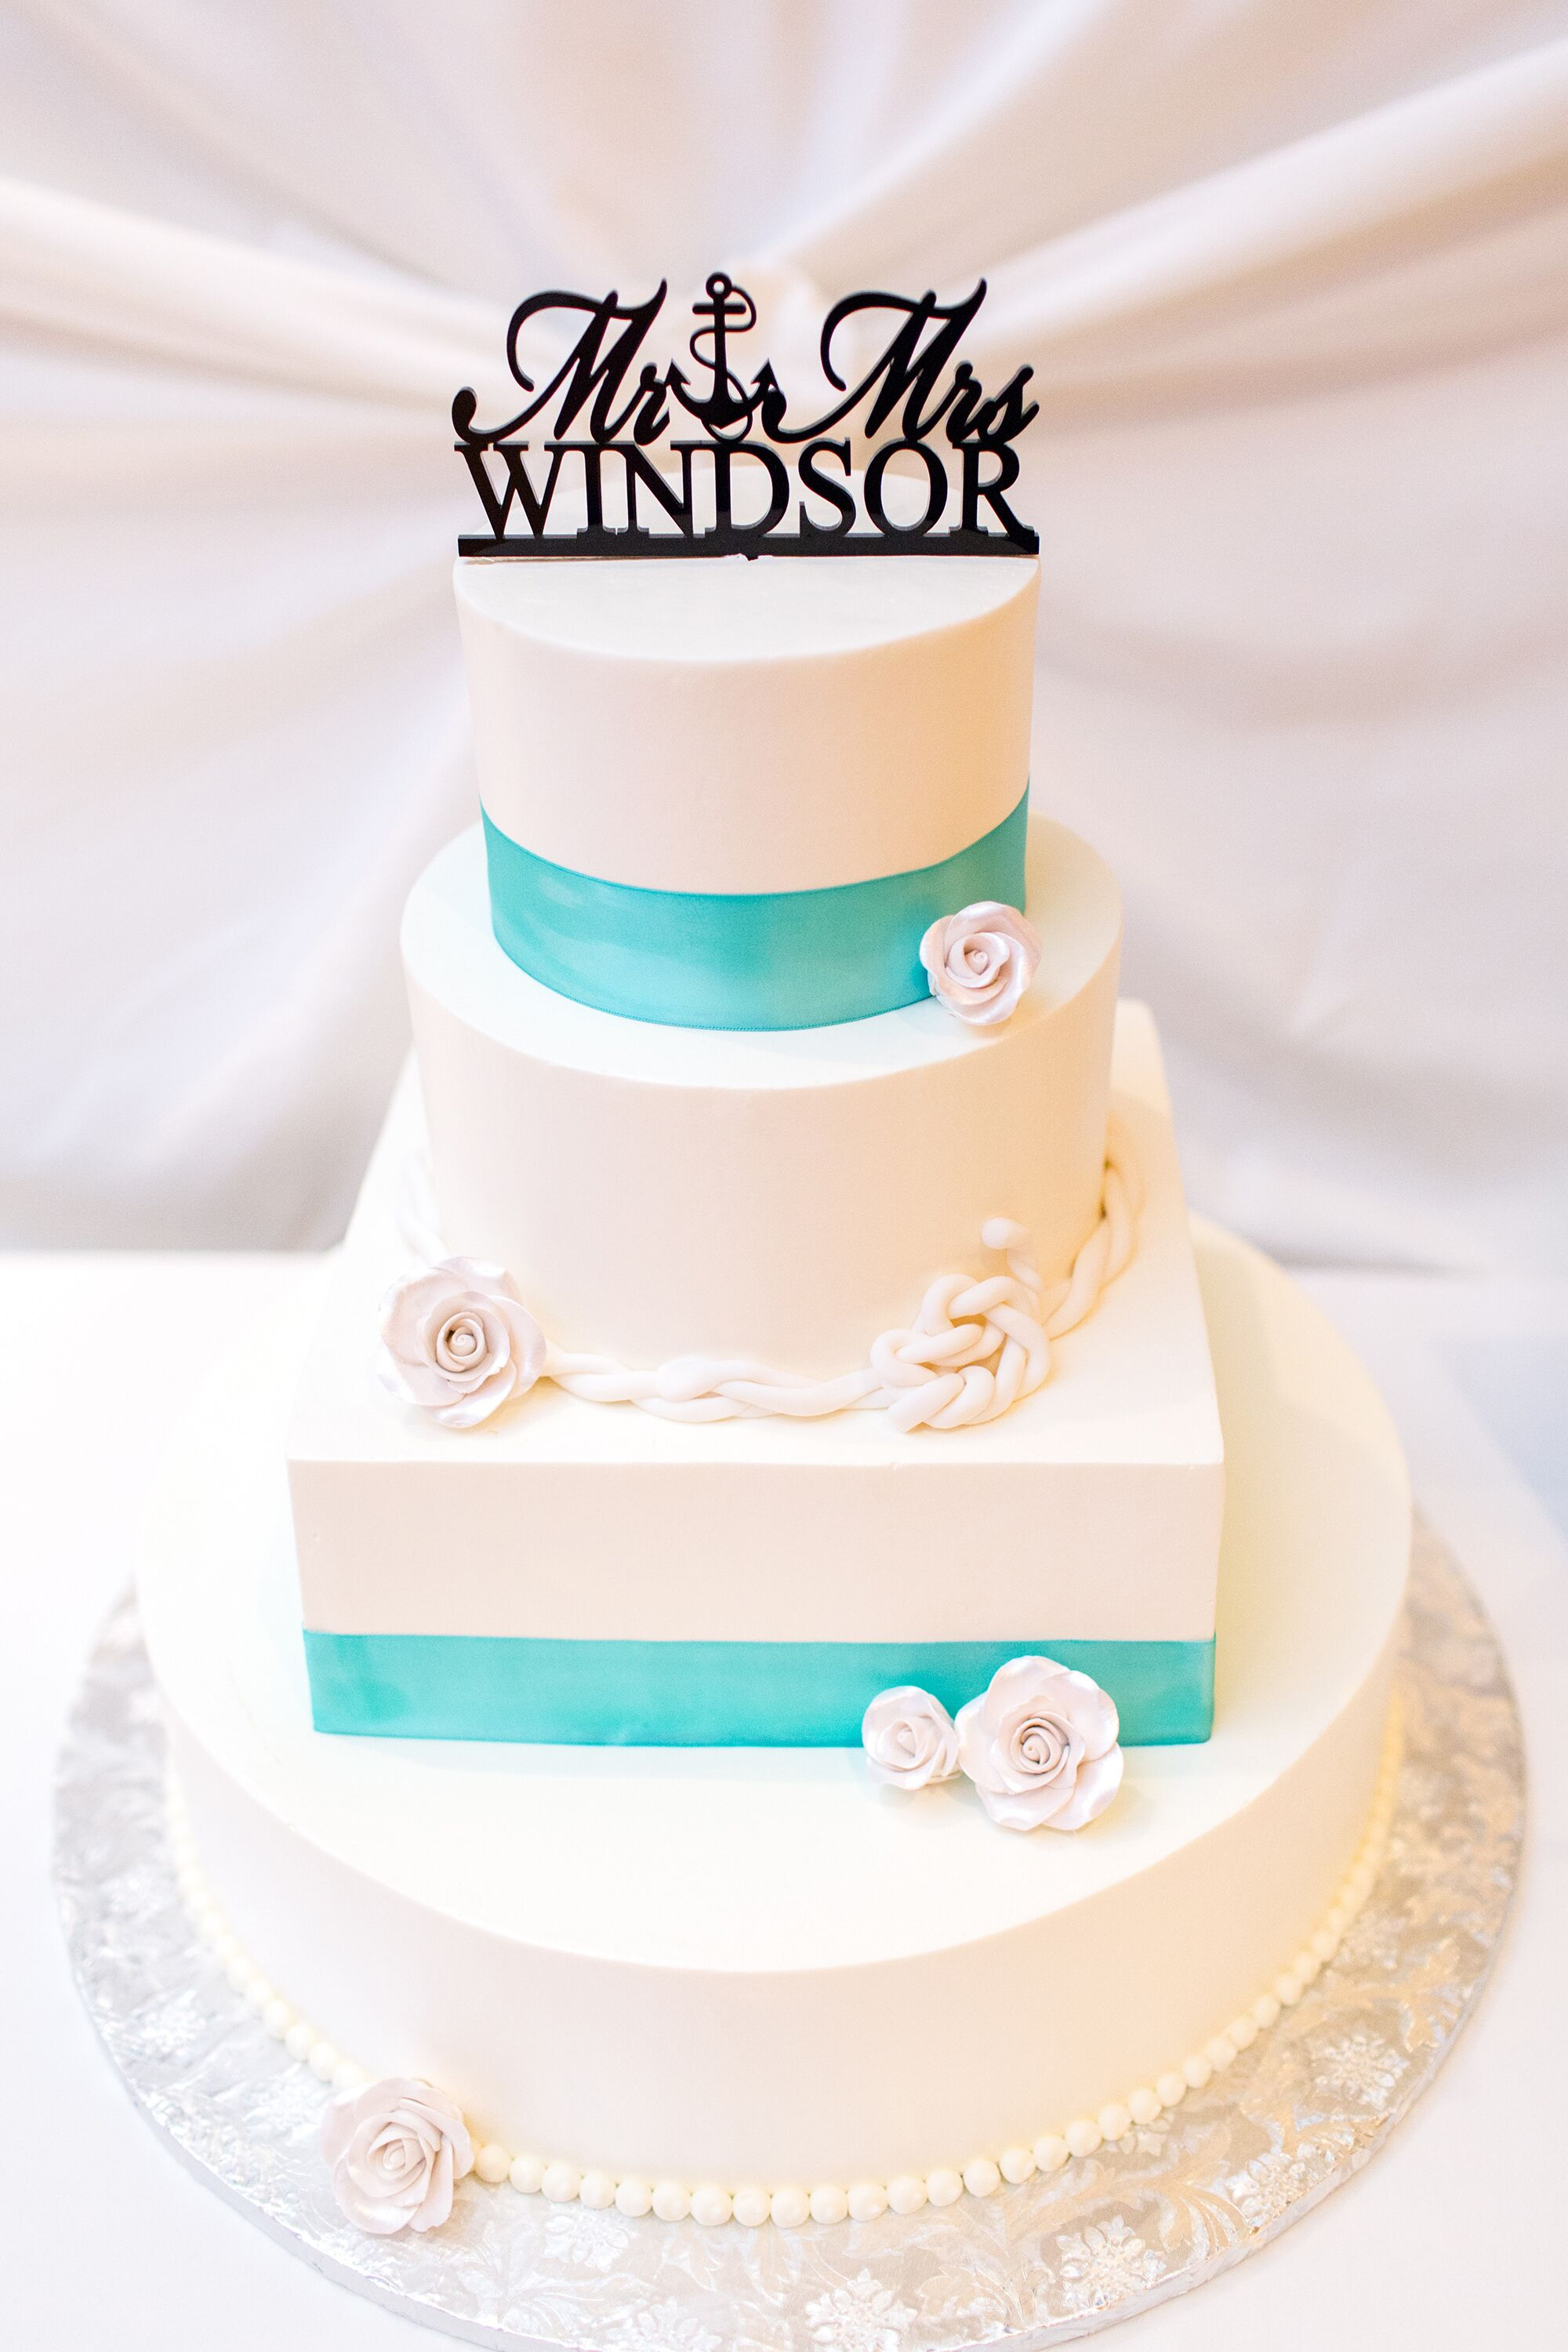 Teal and turquoise wedding